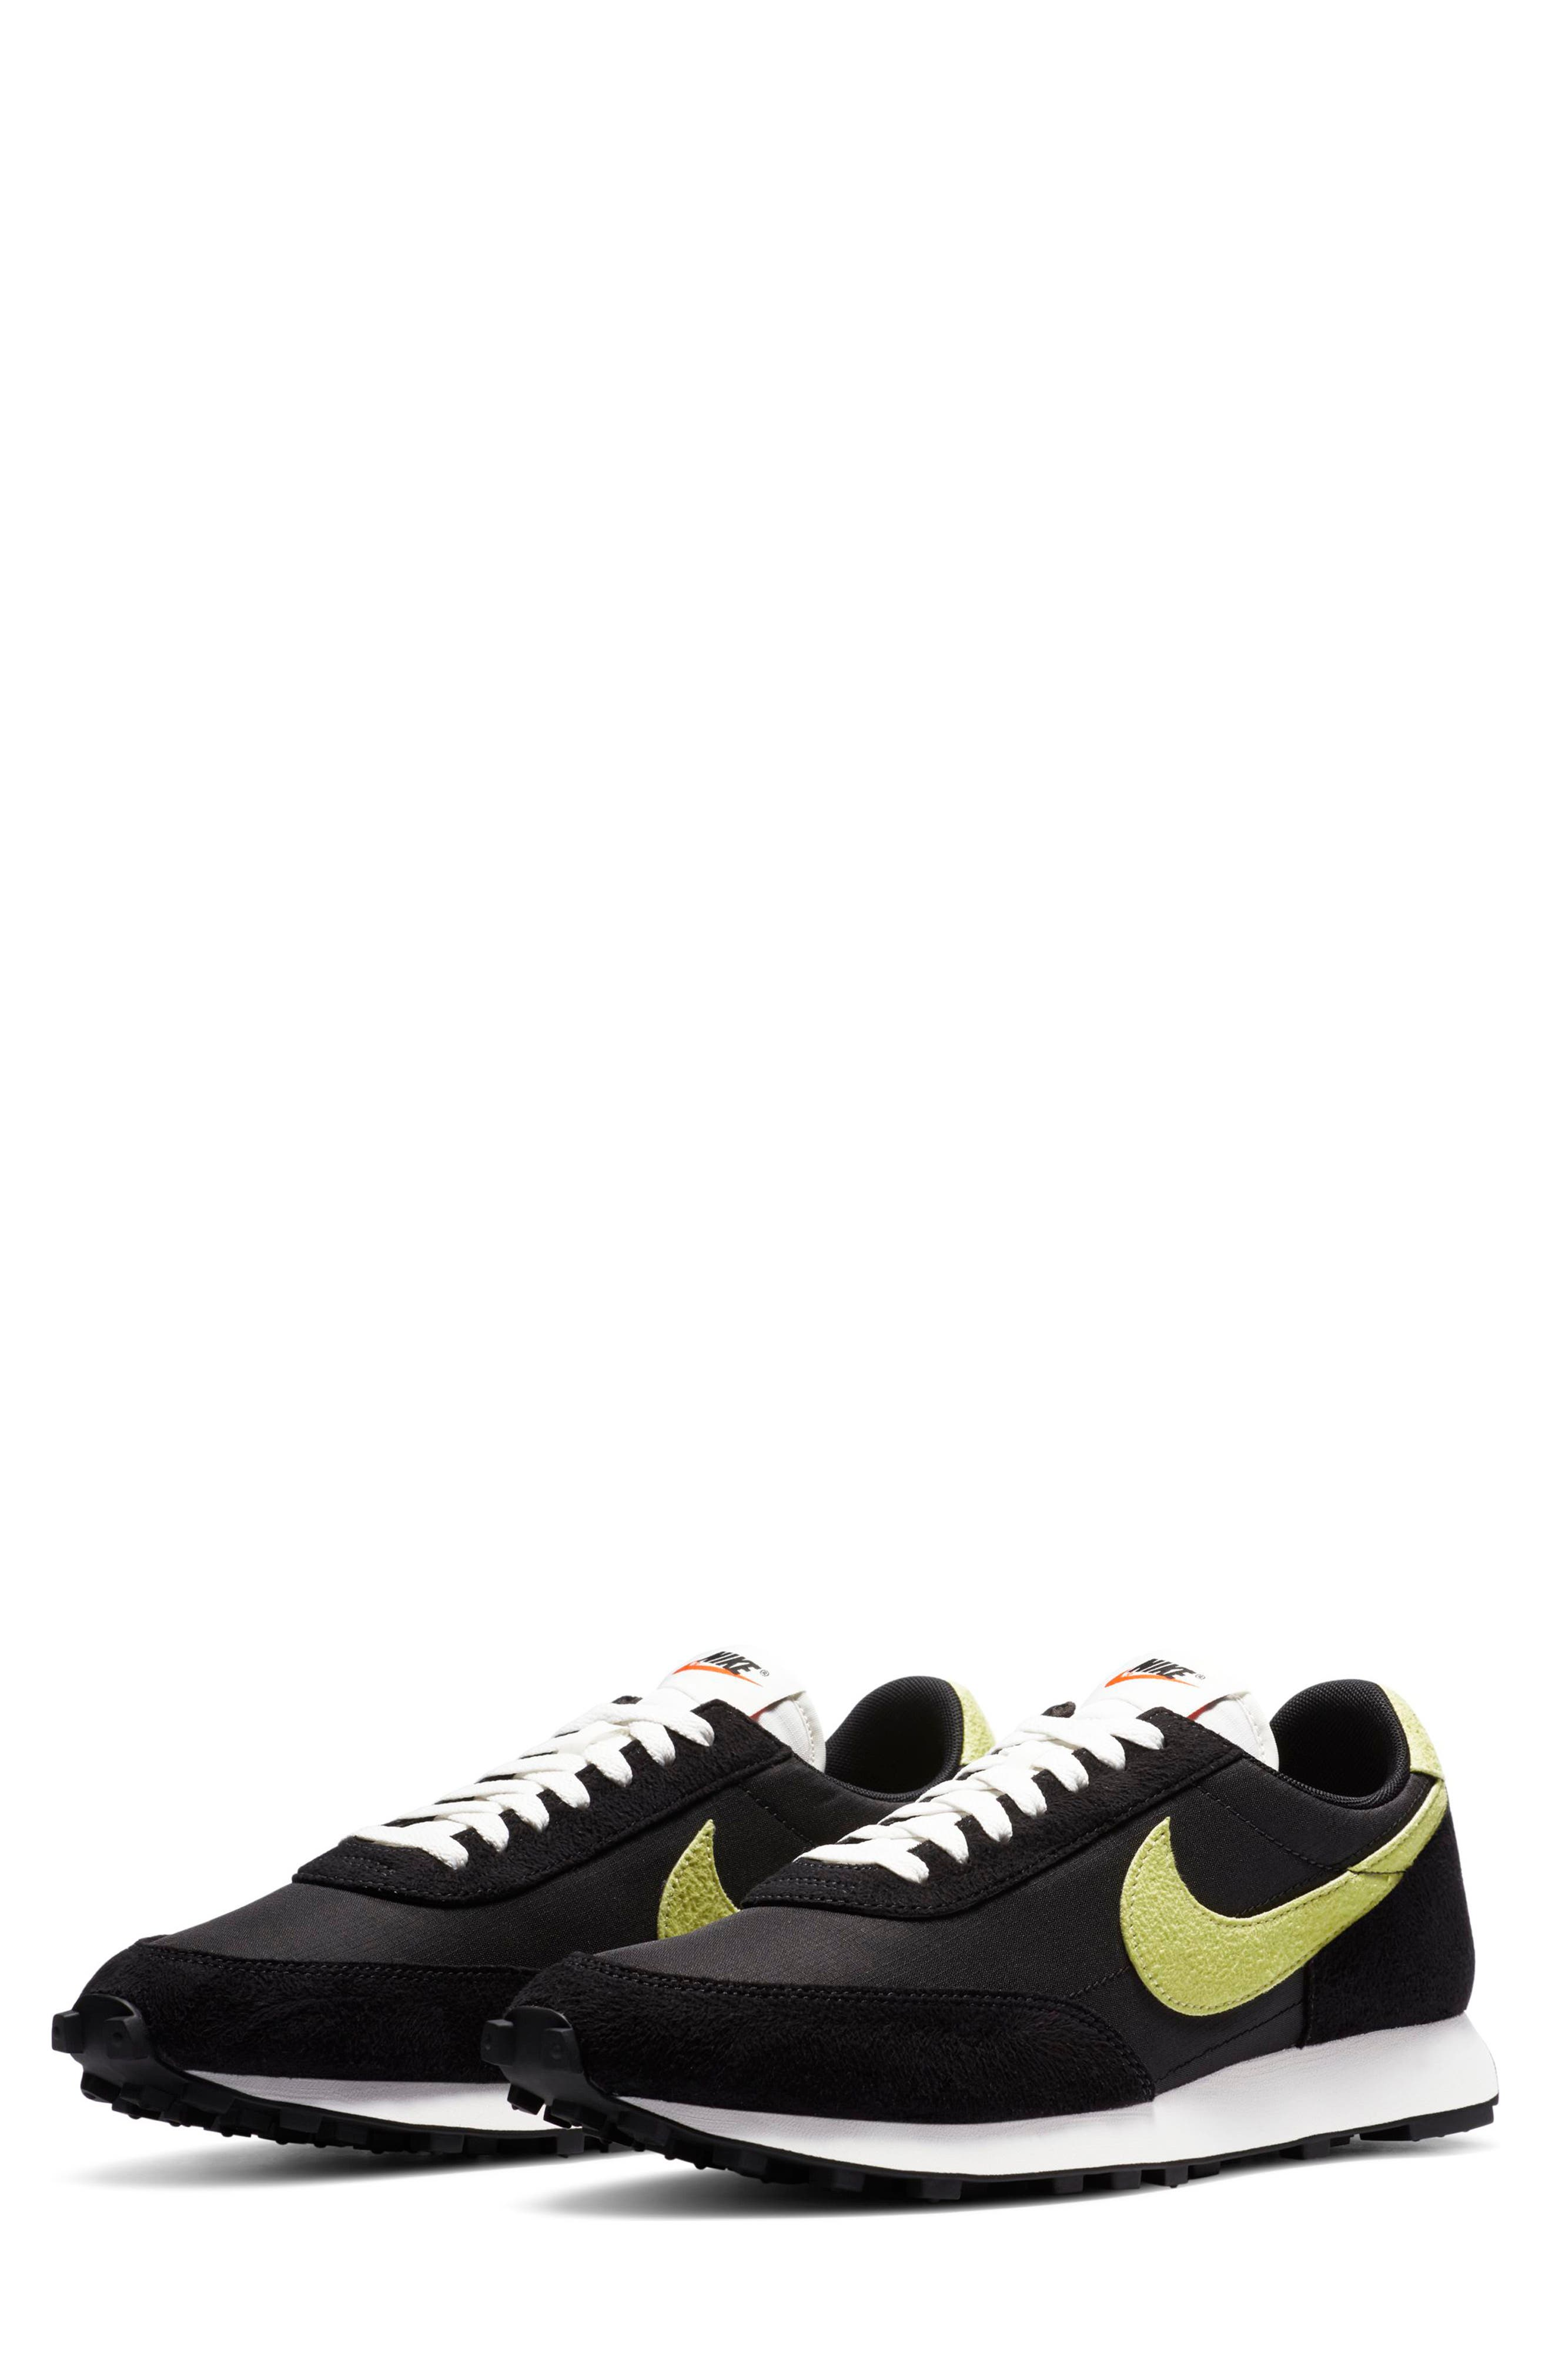 Nike\\\'s 1979 Tailwind marathon shoe gets a much-hyped update in this throwback sneaker that still sports its blend of sleek nylon and high-pile suede. The square-nubbed tread stays faithful to the sneakerhead-favorite original, with iconic Swooshes dropping down the sides for a look that\\\'ll give it heavy play in your sneaker rotation. Style Name: Nike Daybreak Sp Sneaker (Unisex). Style Number: 5949568. Available in stores.